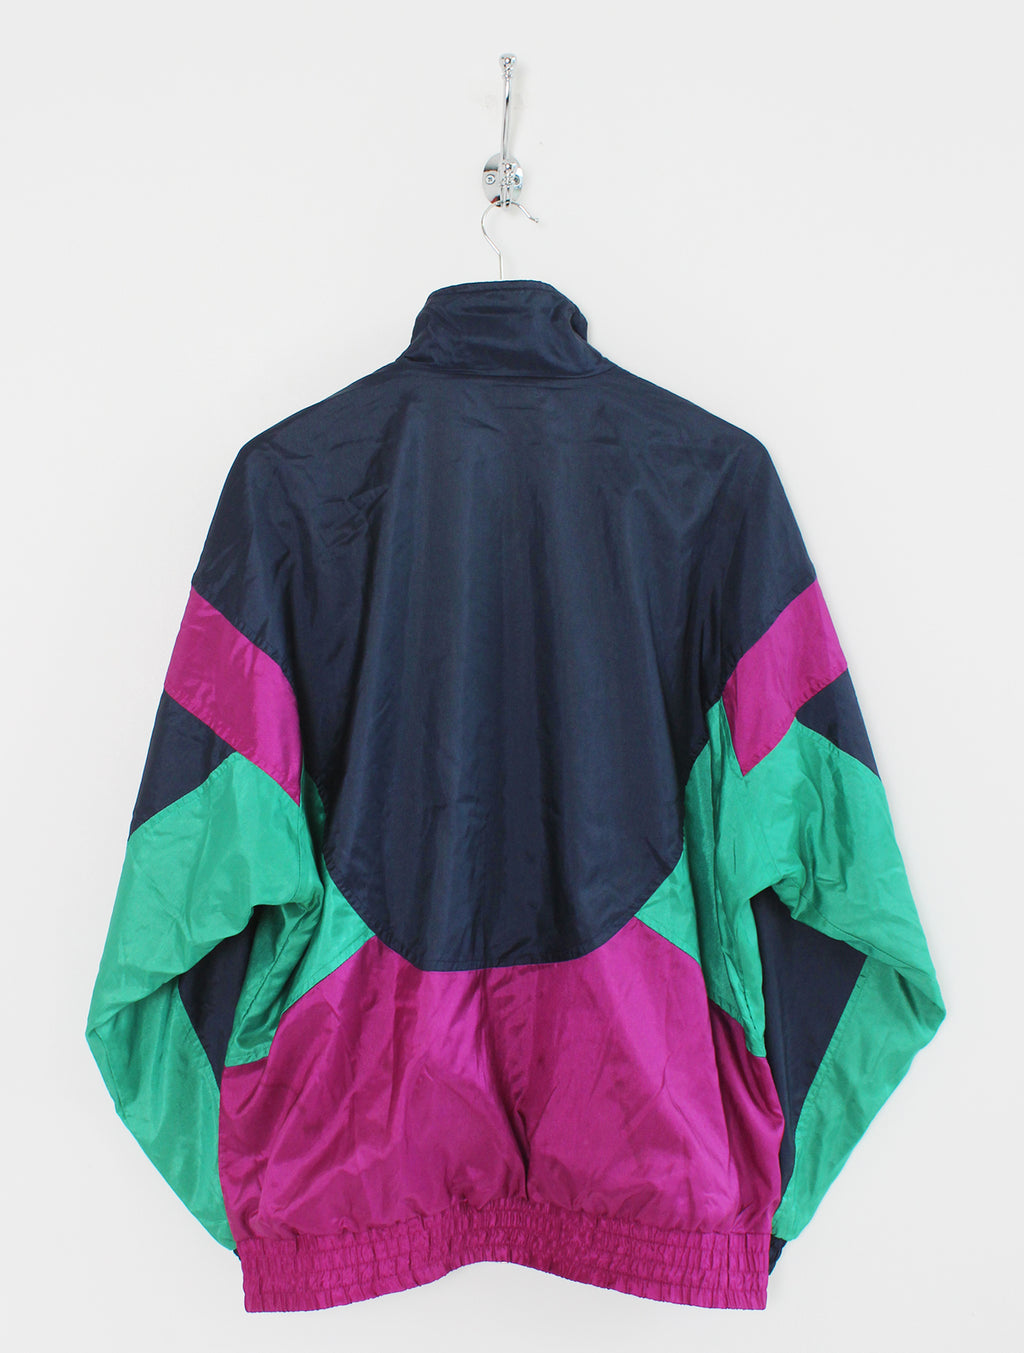 Adidas Shell Suit Jacket (XL)